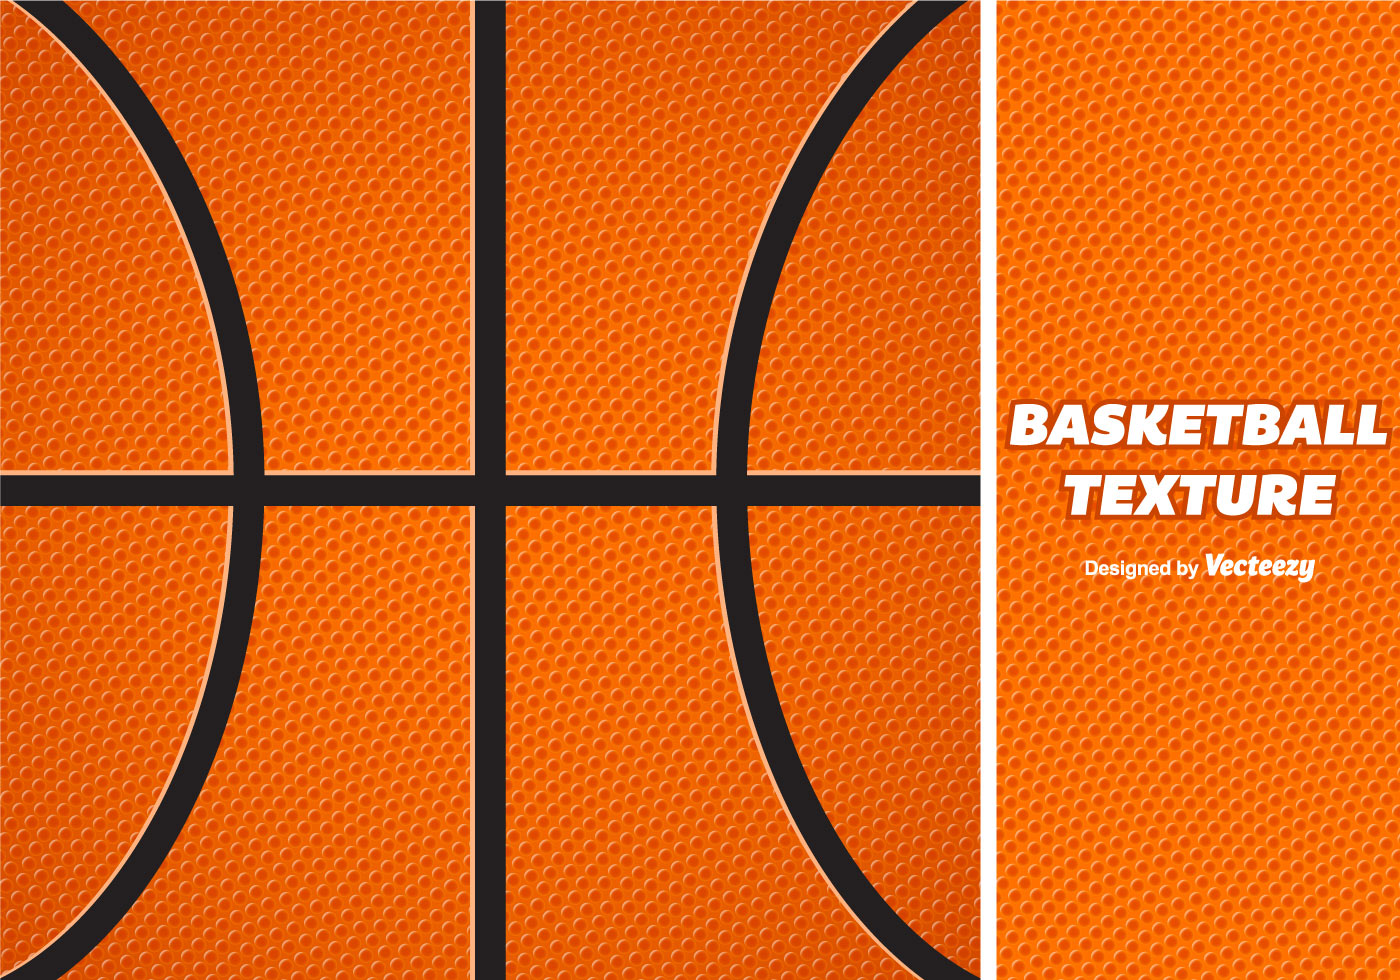 Free basketball vector background download free vector art stock graphics images for Free basketball vector